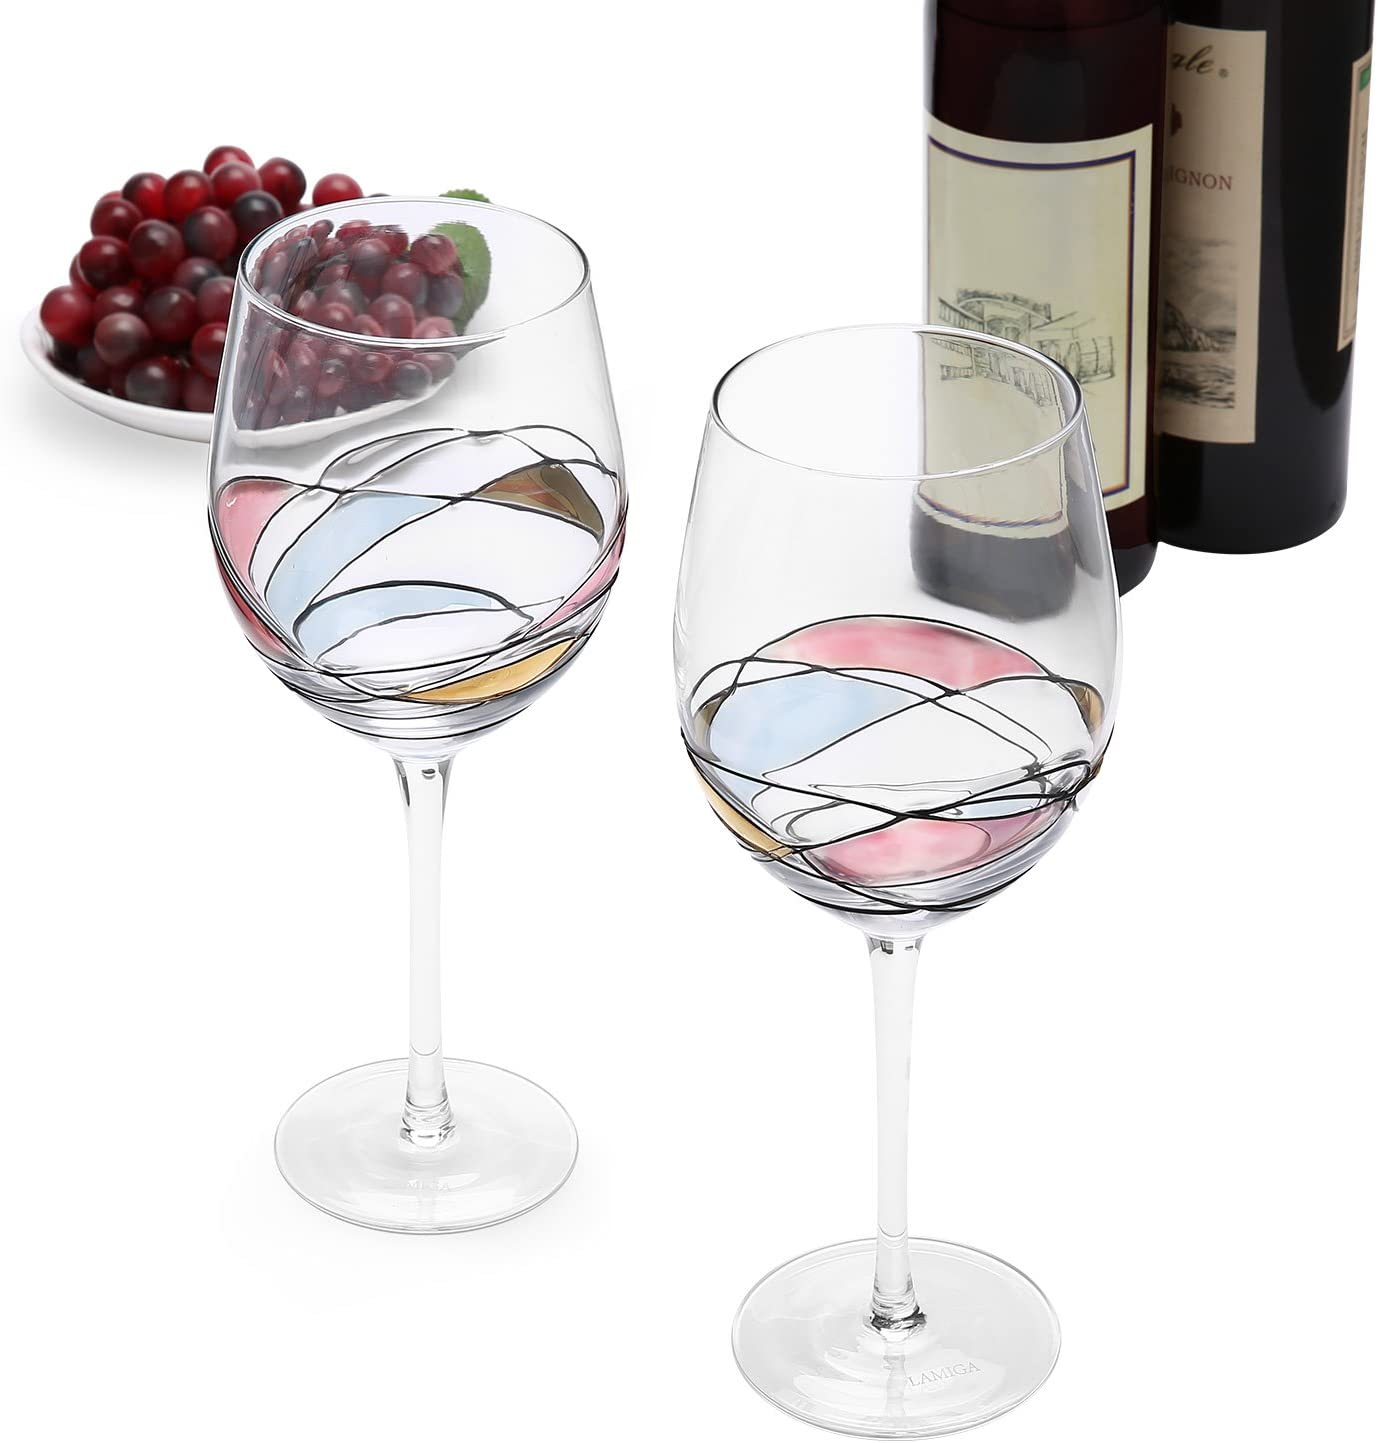 2, 20RW Red Tailed Hawk Raptor Laser Etched Large Red Wine Glass Set